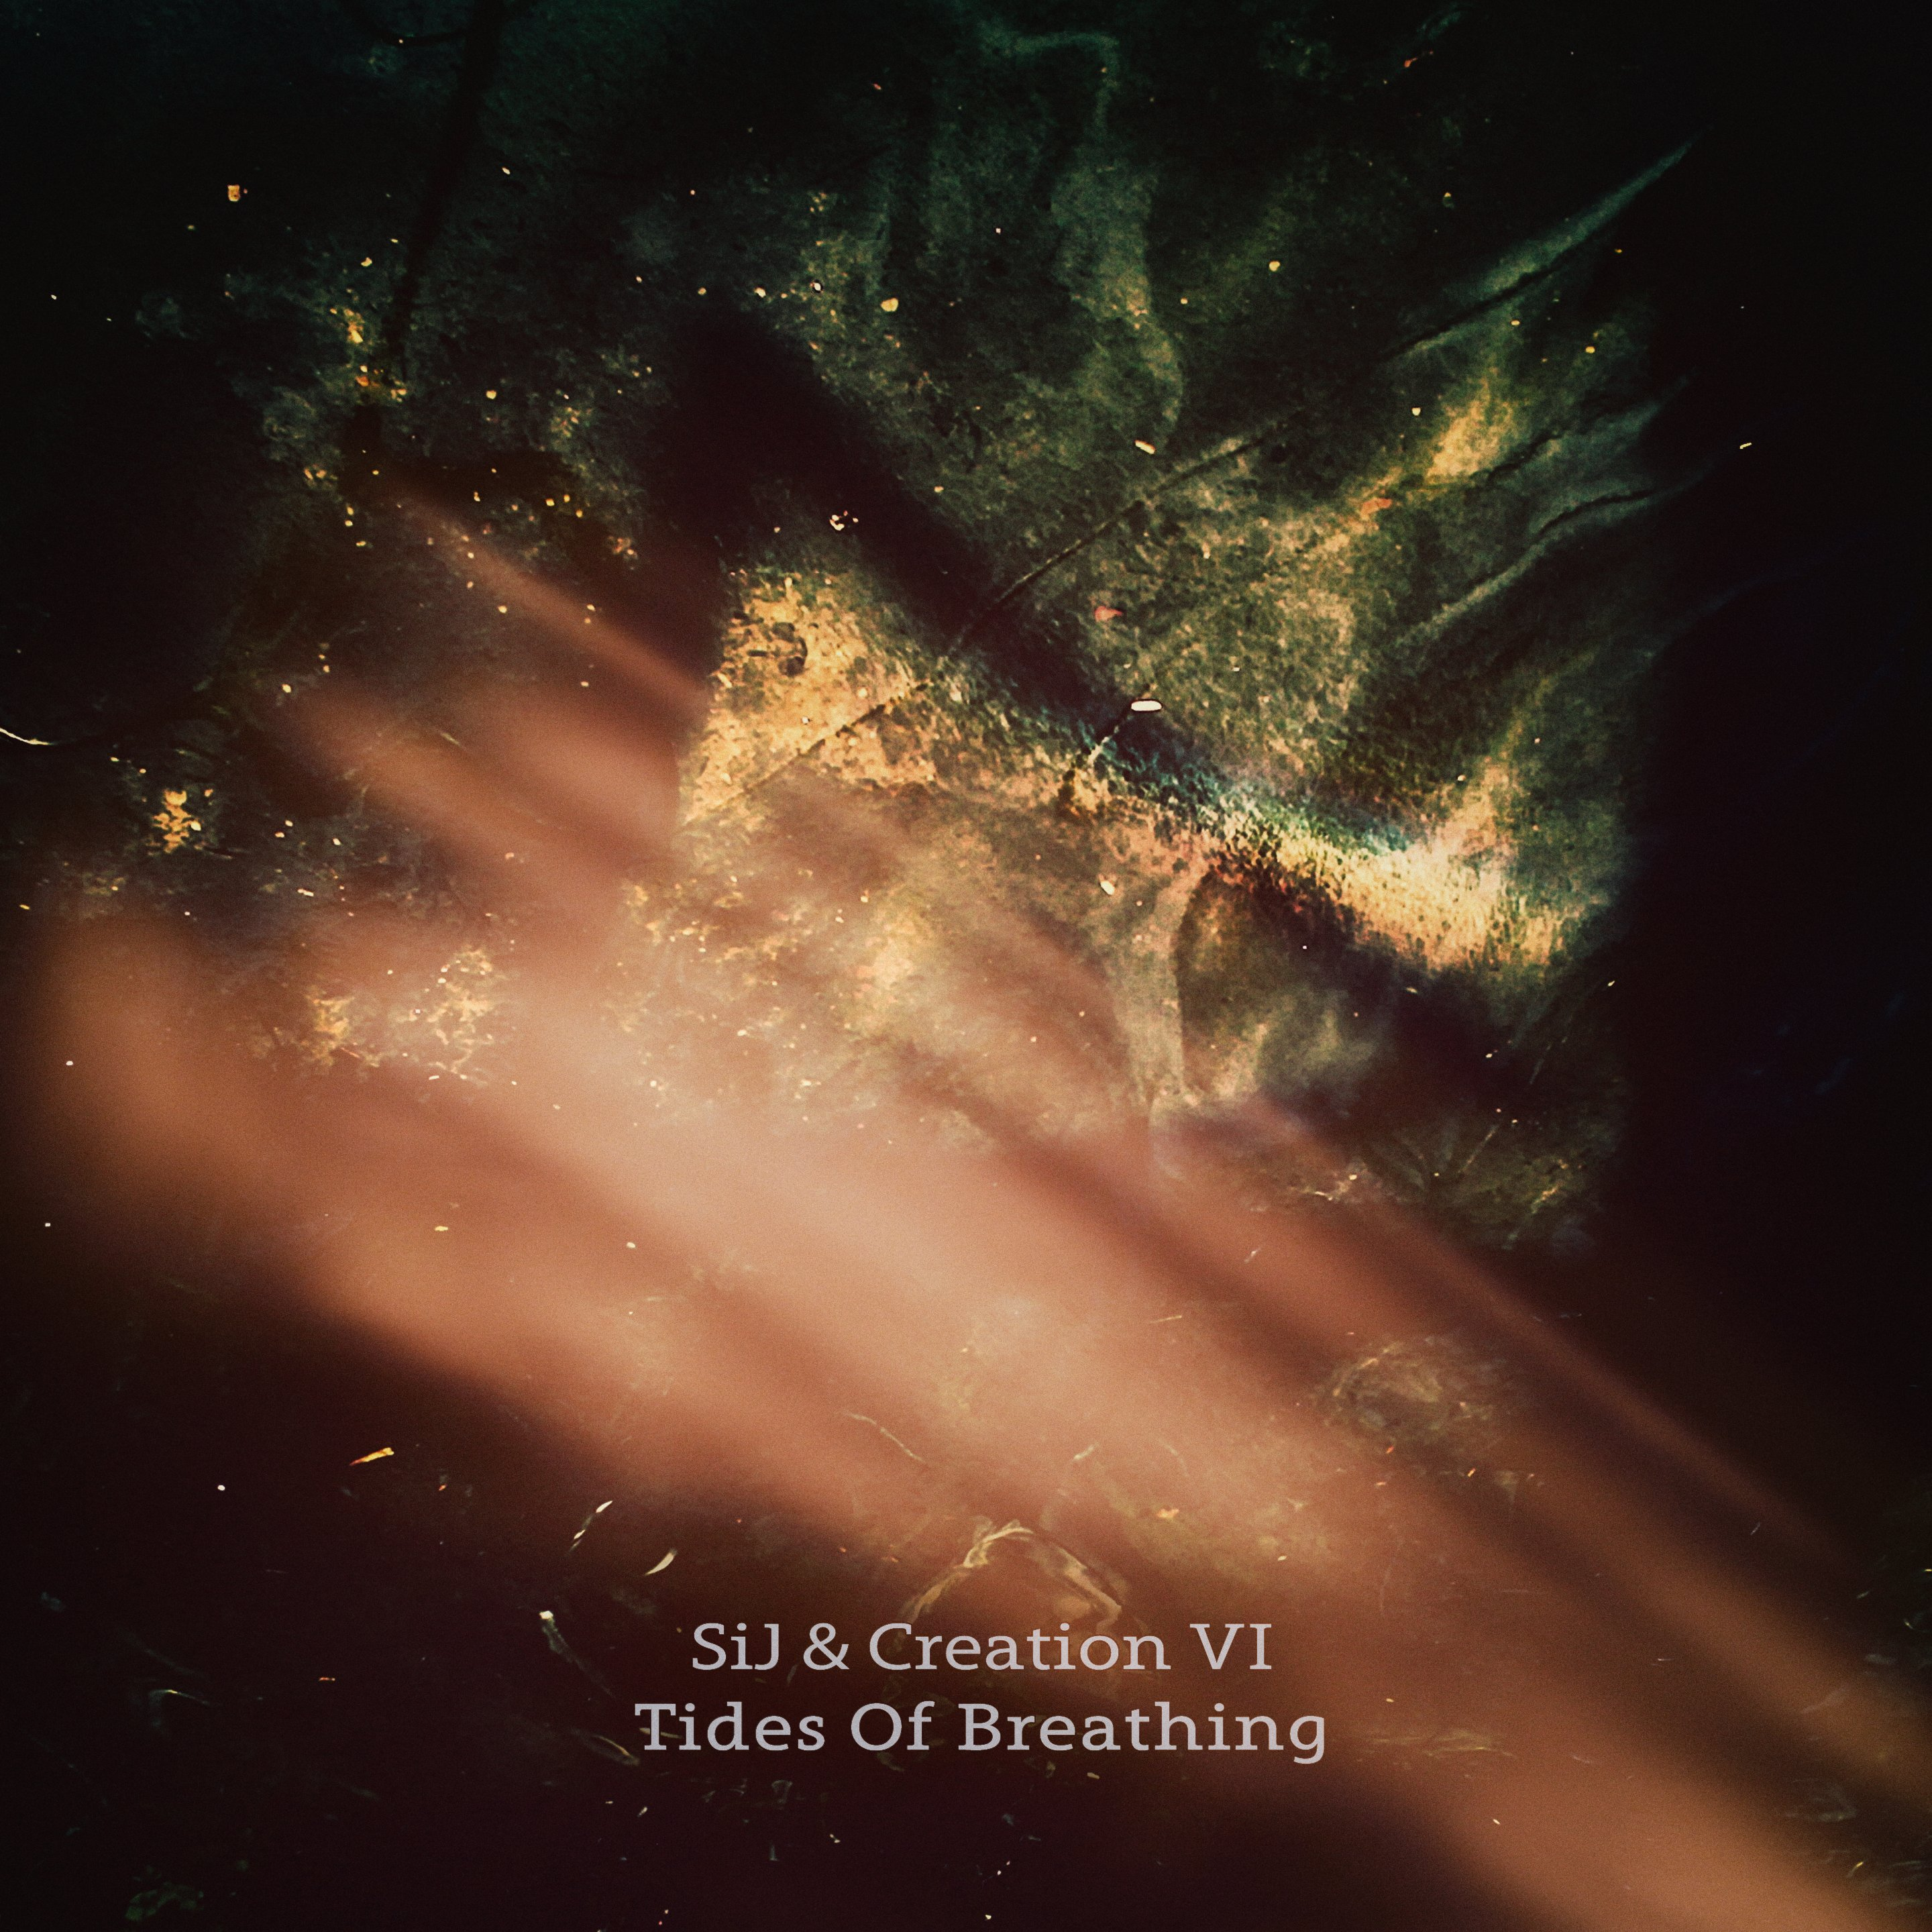 Tides Of Breathing